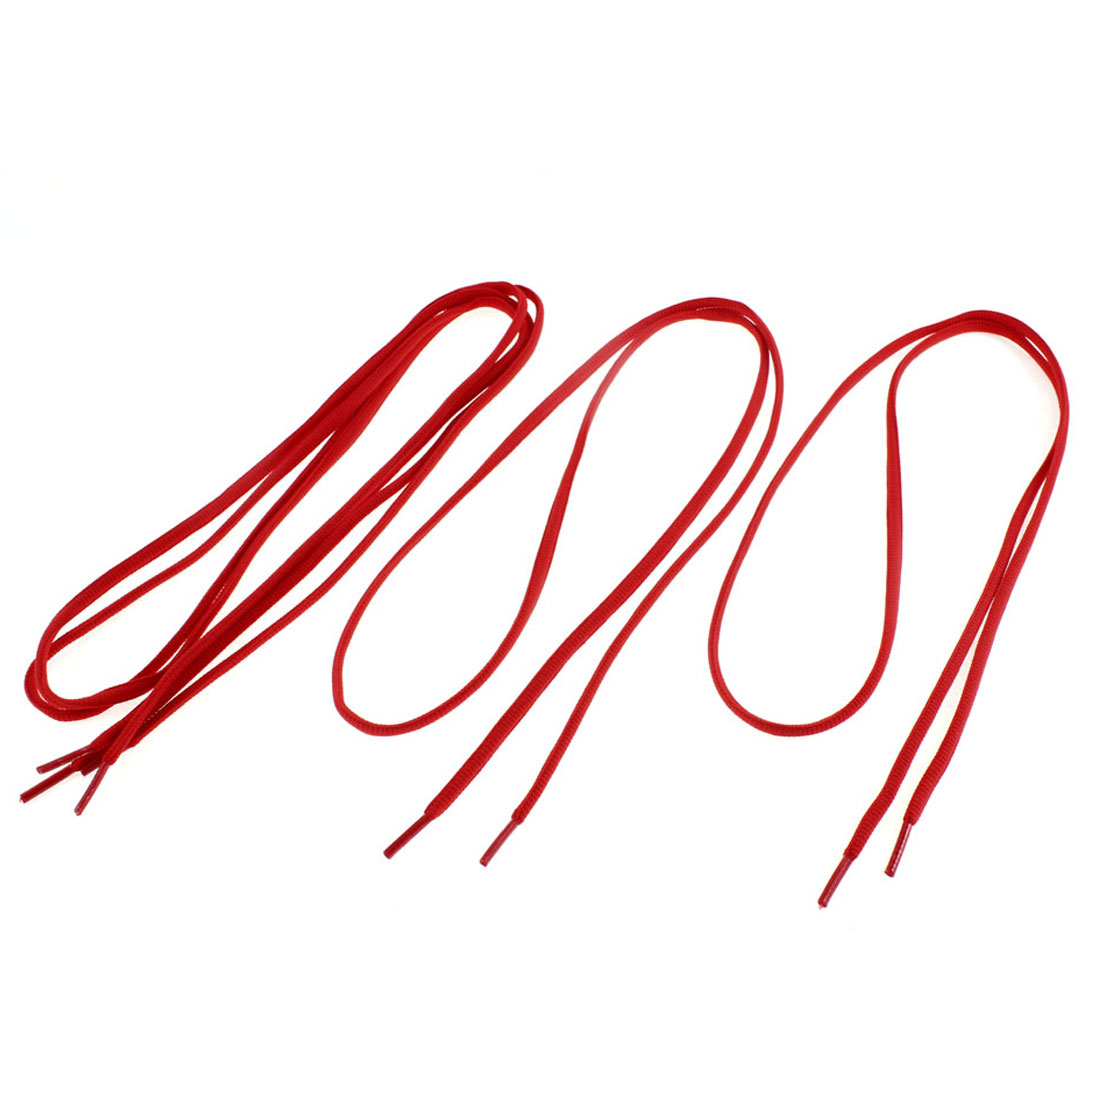 Unique Bargains Cotton Blends Round Sports Shoes Shoelaces String 112cm Length Red 2 Pairs - image 2 of 2